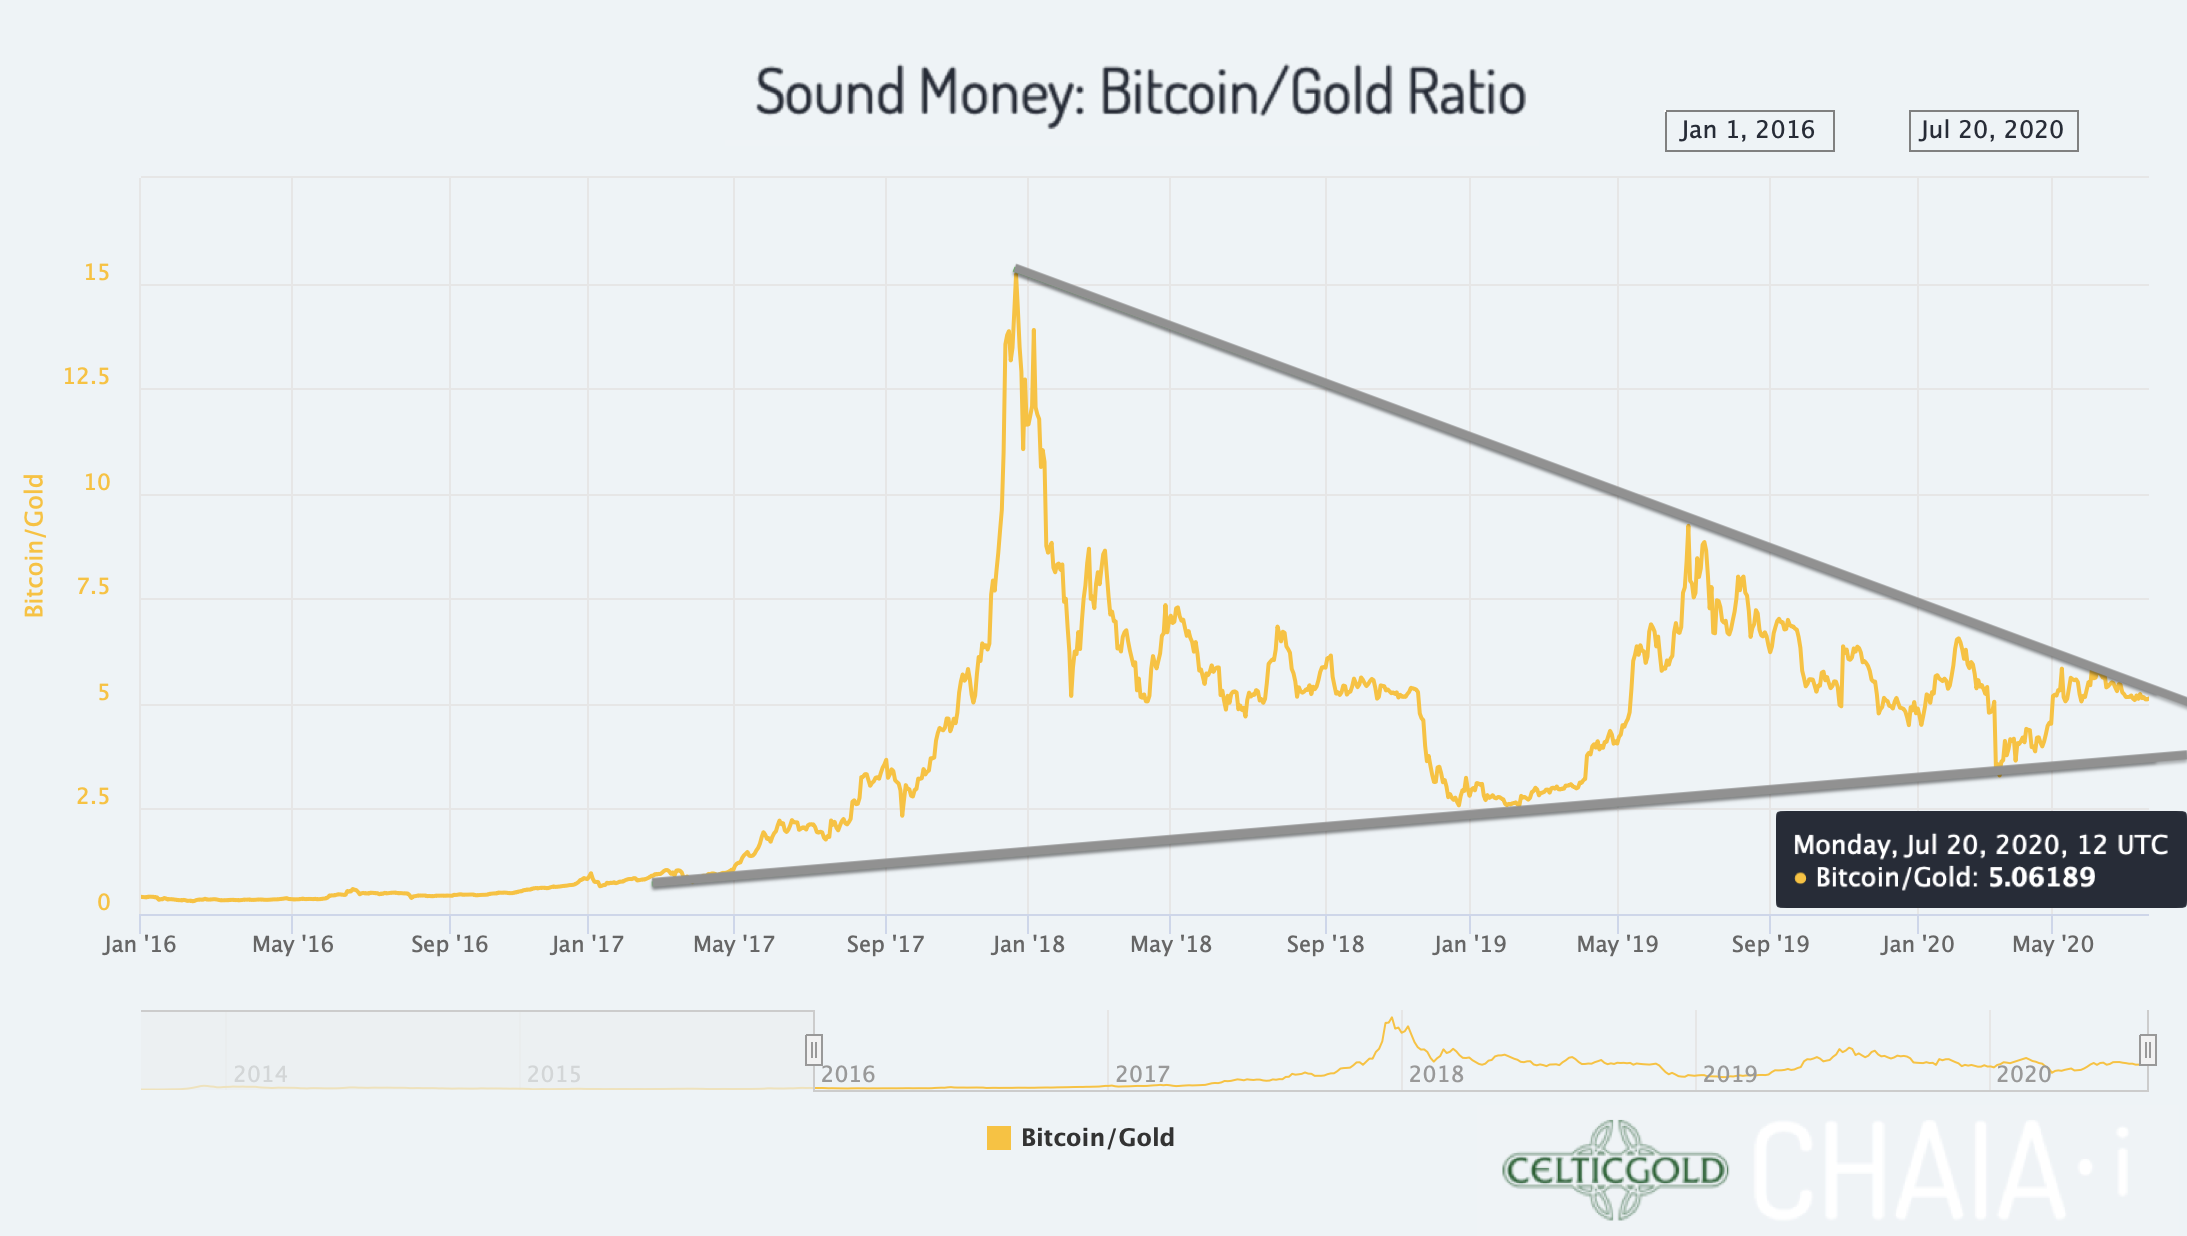 Sound Money Bitcoin/Gold-Ratio as of July 23rd, 2020. Source: Chaia. Bitcoin- Next Attack On US$10,000